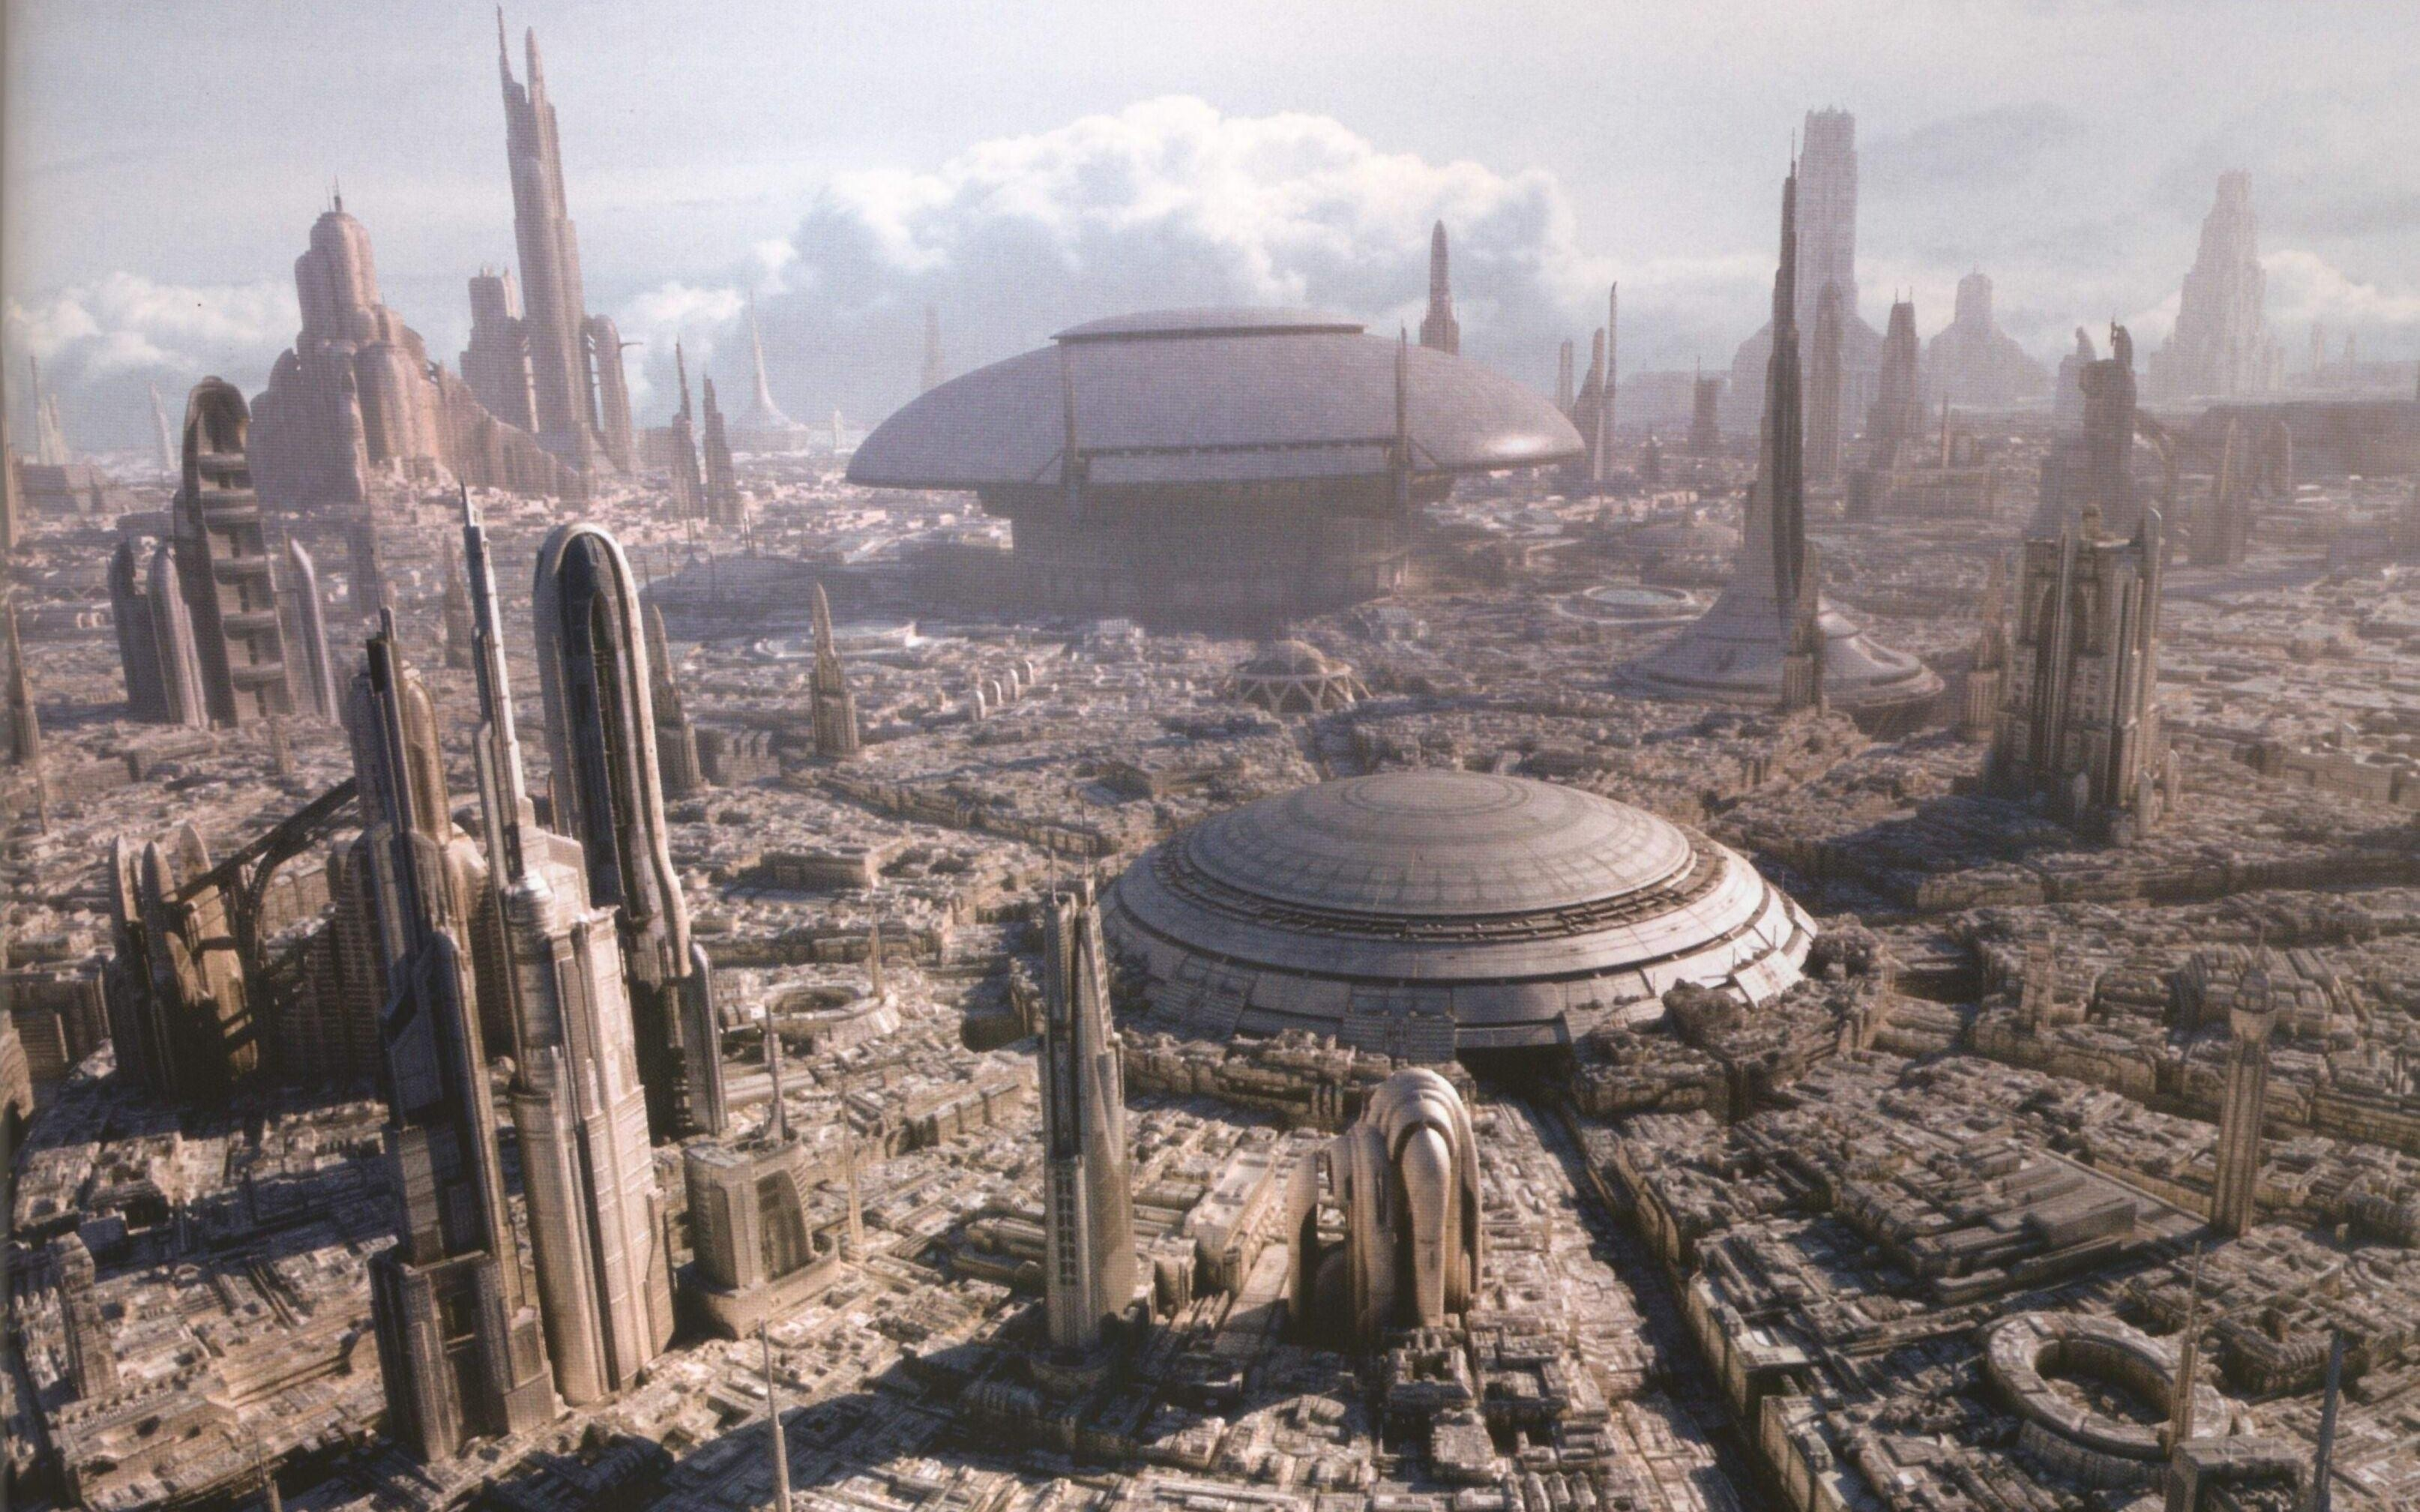 Star wars science fiction coruscant wallpaper